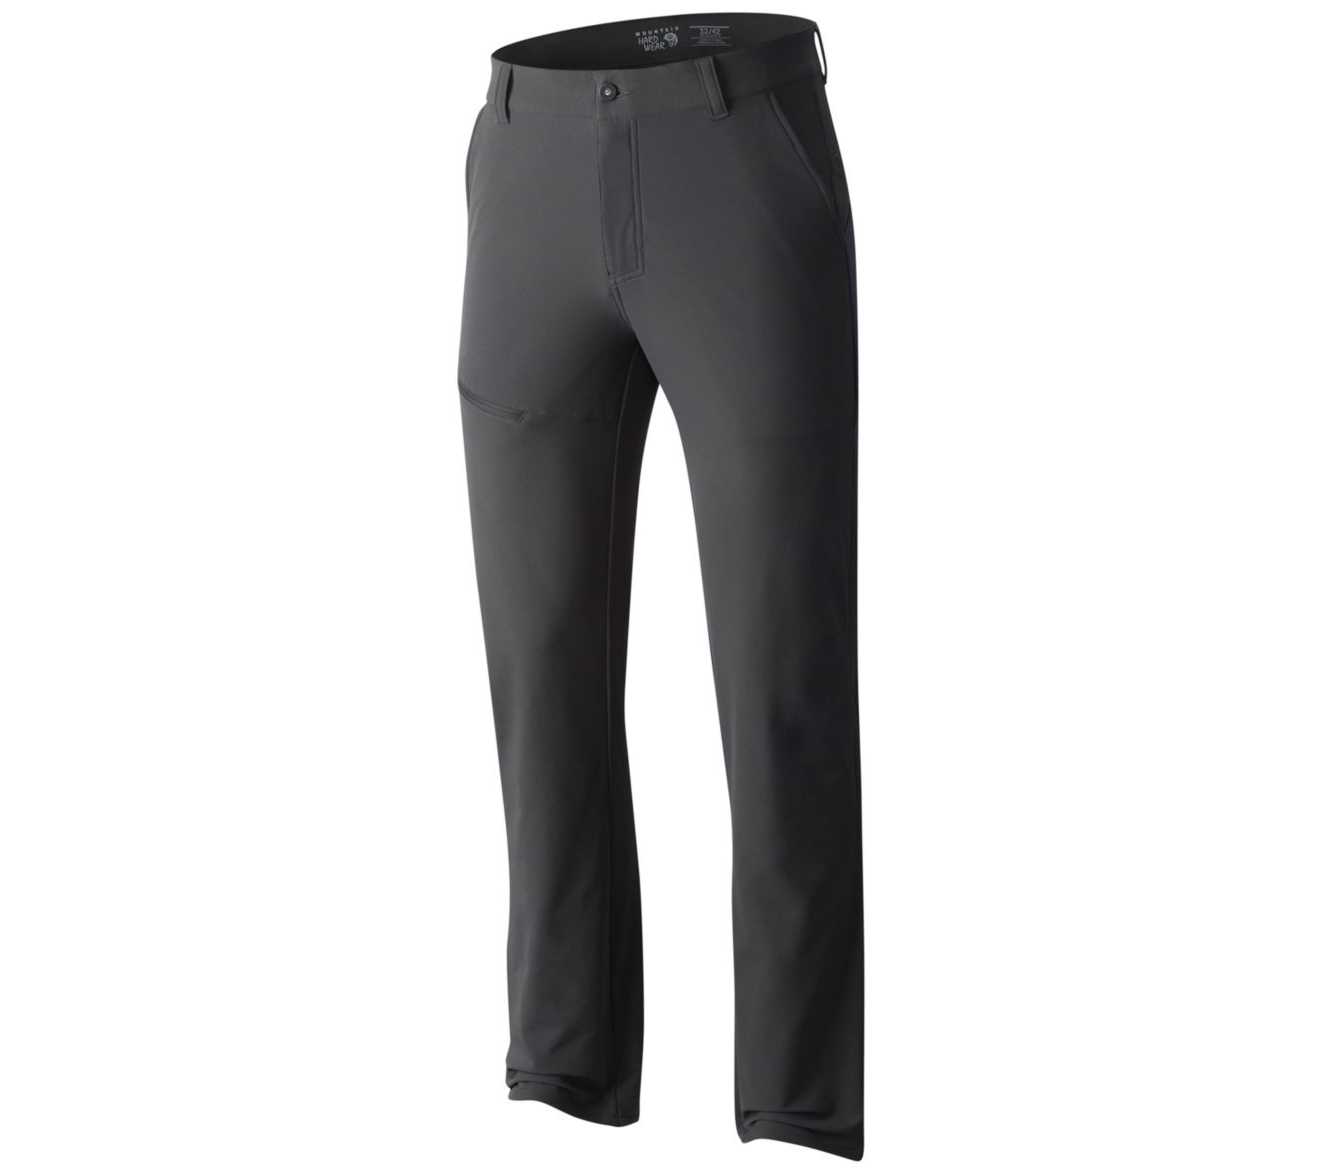 Mountain Hardwear Men's Chockstone 24/7 Hike Pants